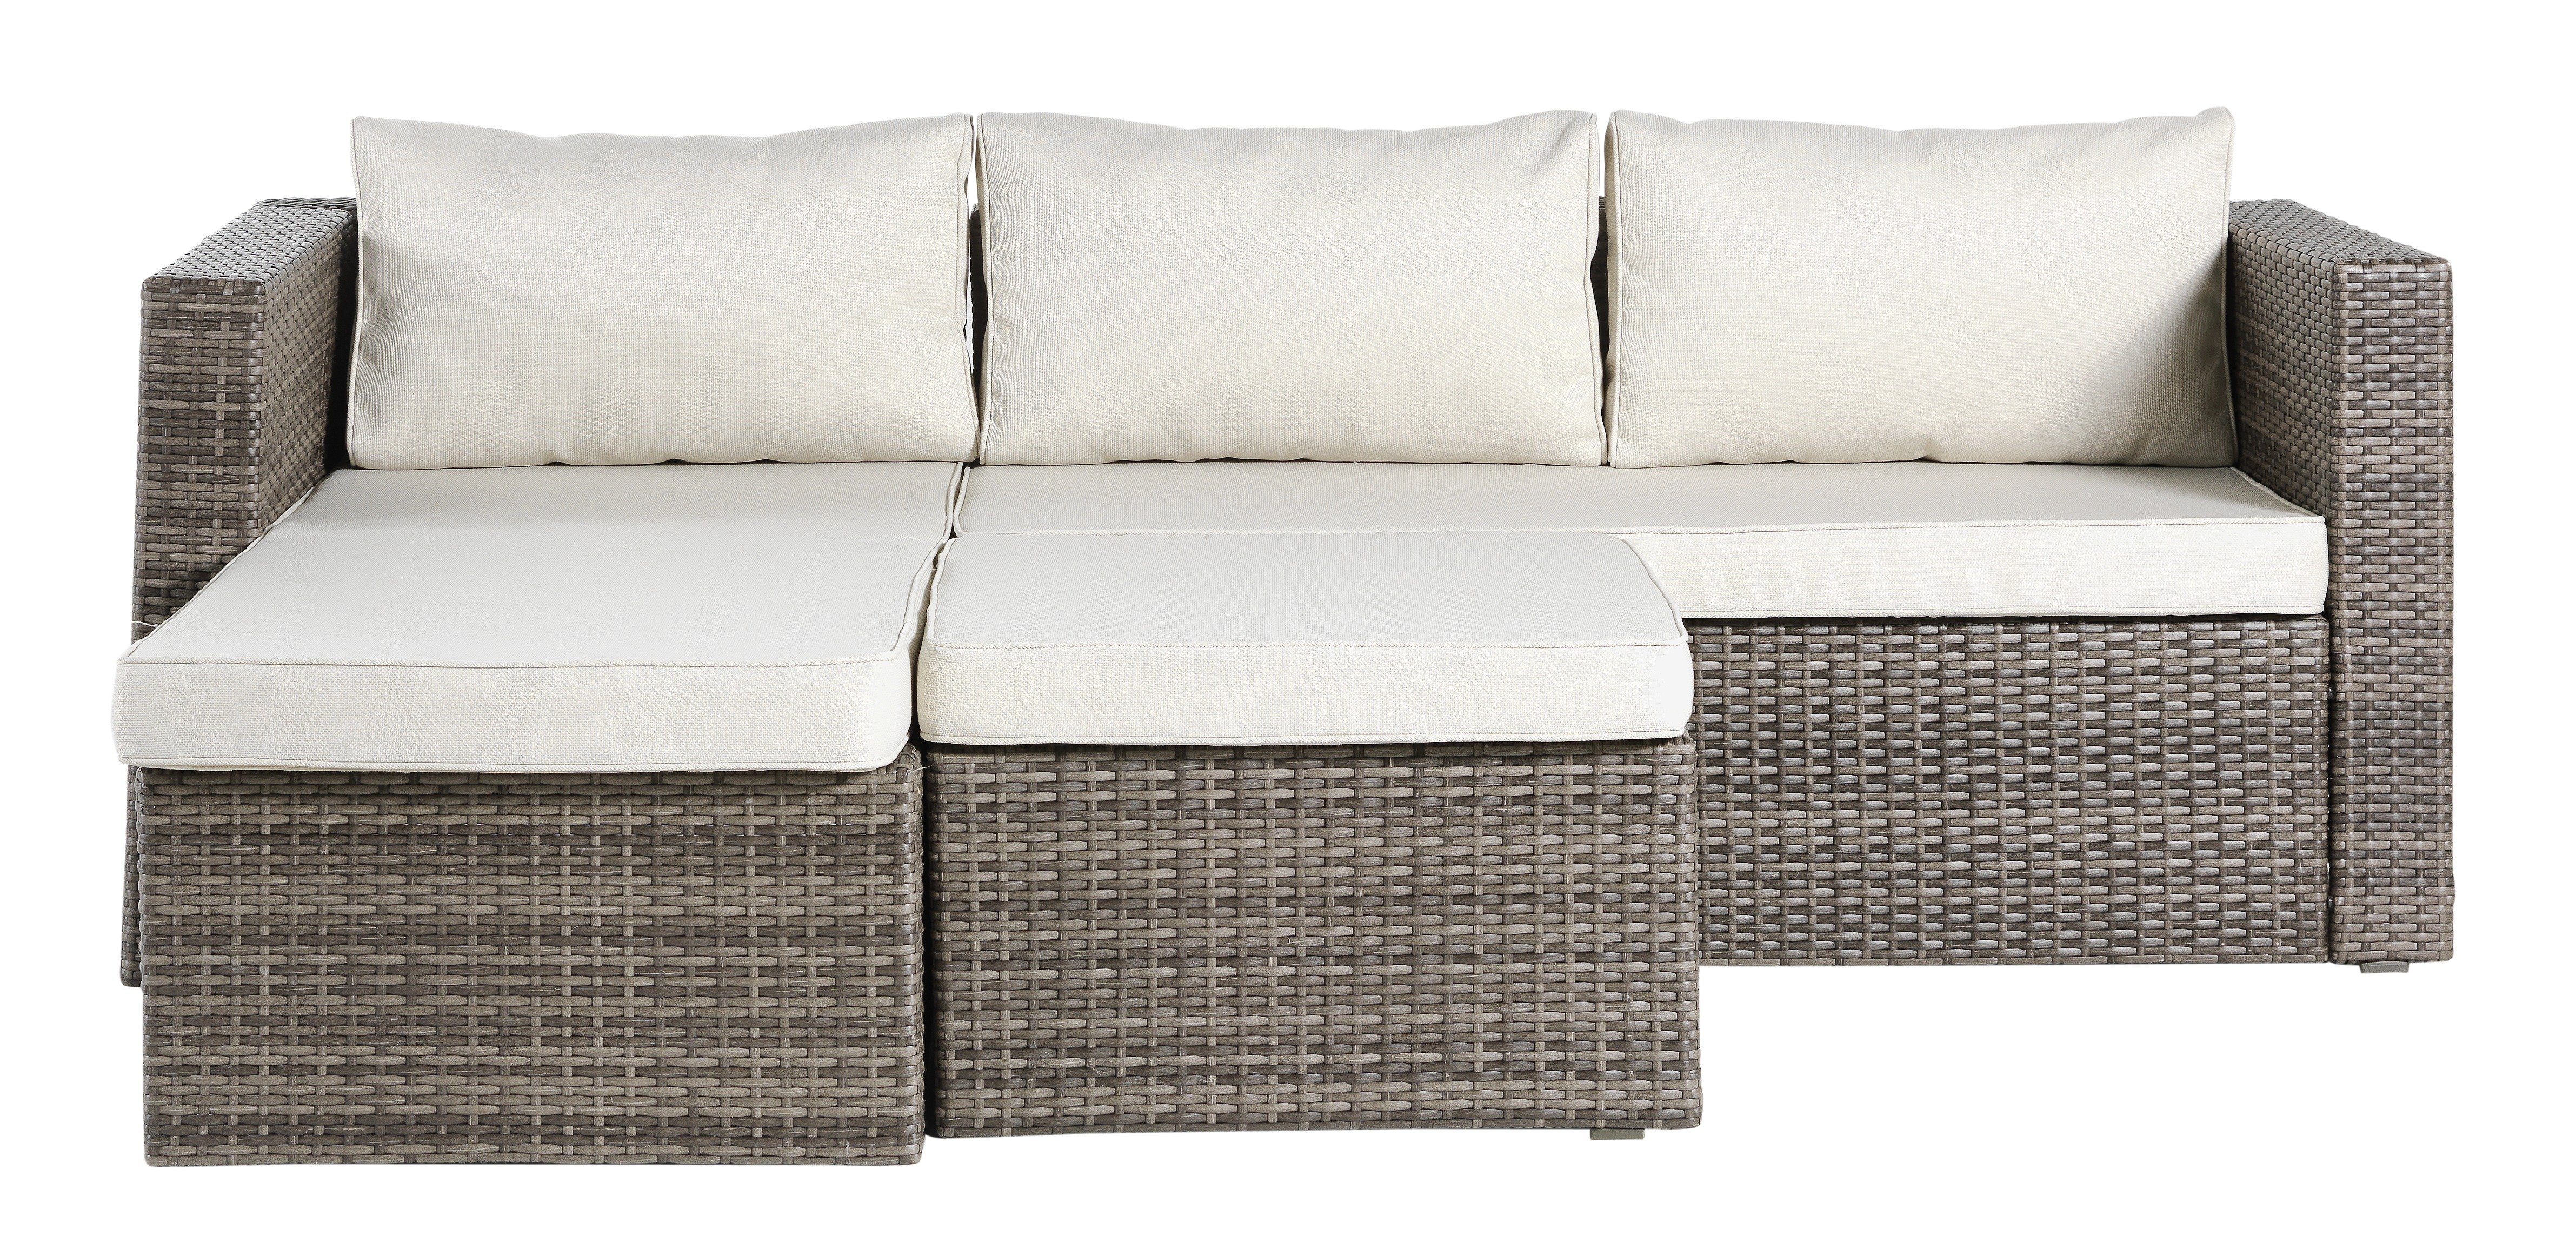 oxford 4 piece brown rattan effect sofa set small rounded corner find it for less